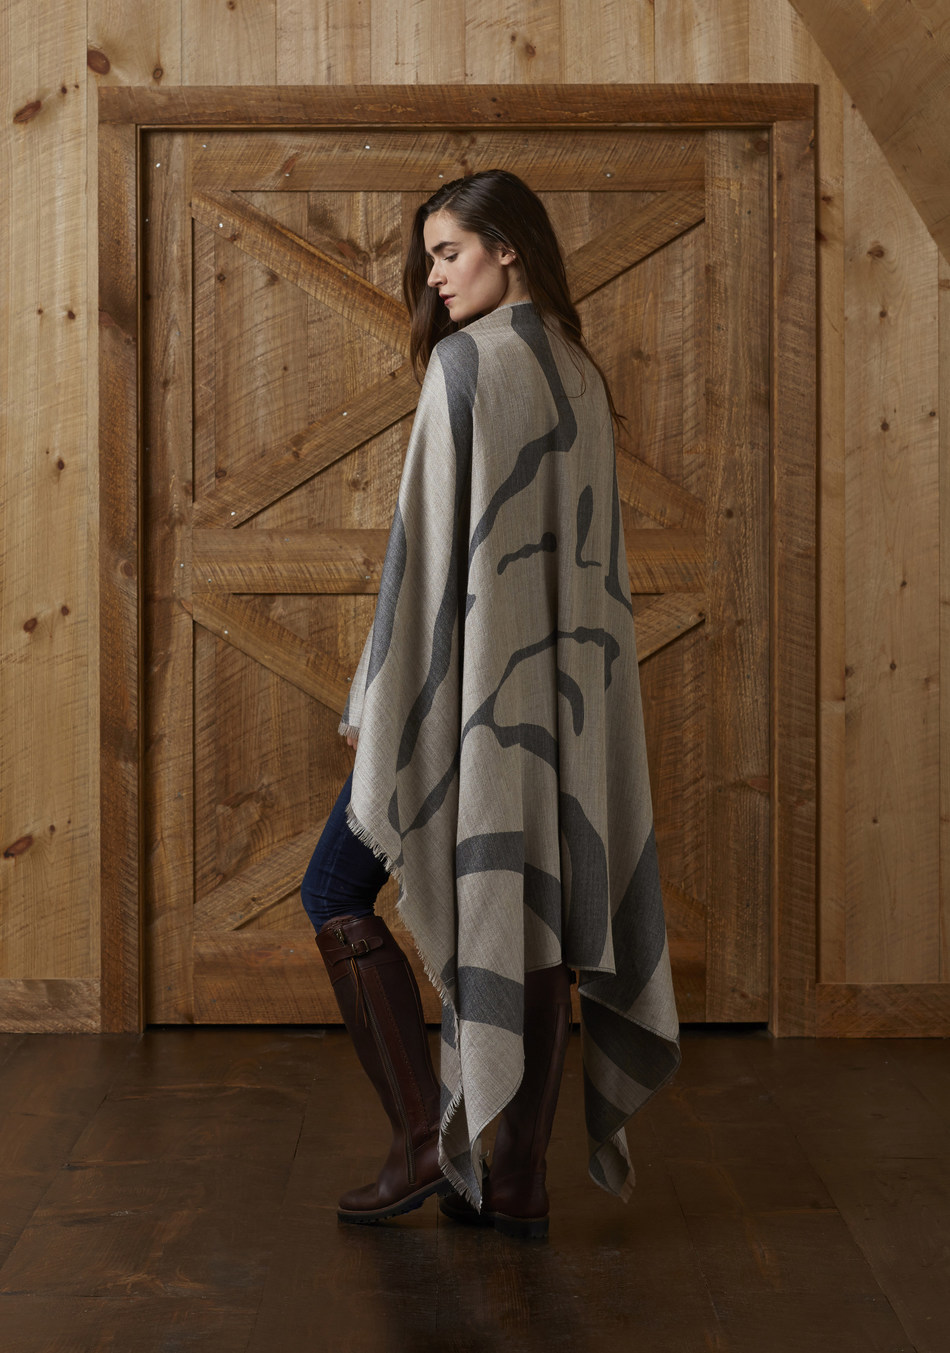 alicia adams alpaca - Safari Wrap. 100% baby alpaca | Photographer: Tom Moore | https://www.aliciaadamsalpaca.com/shop/accessories/safari-wrap/